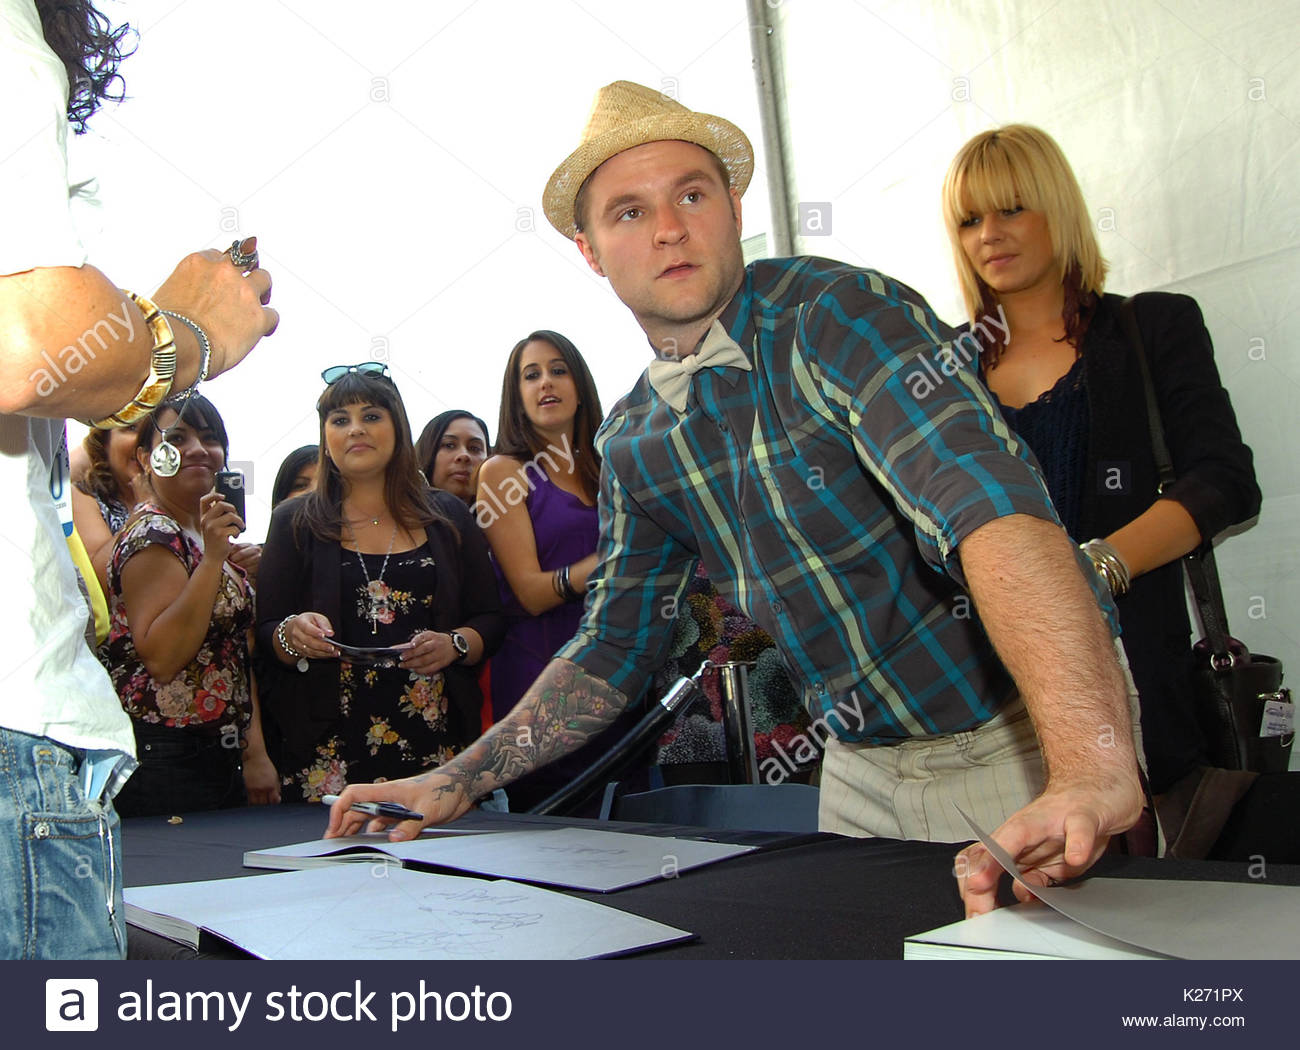 Blake lewis former american idol performers meet and greet fans former american idol performers meet and greet fans outside for autographs and photos at la live next to the staples center in los angeles california m4hsunfo